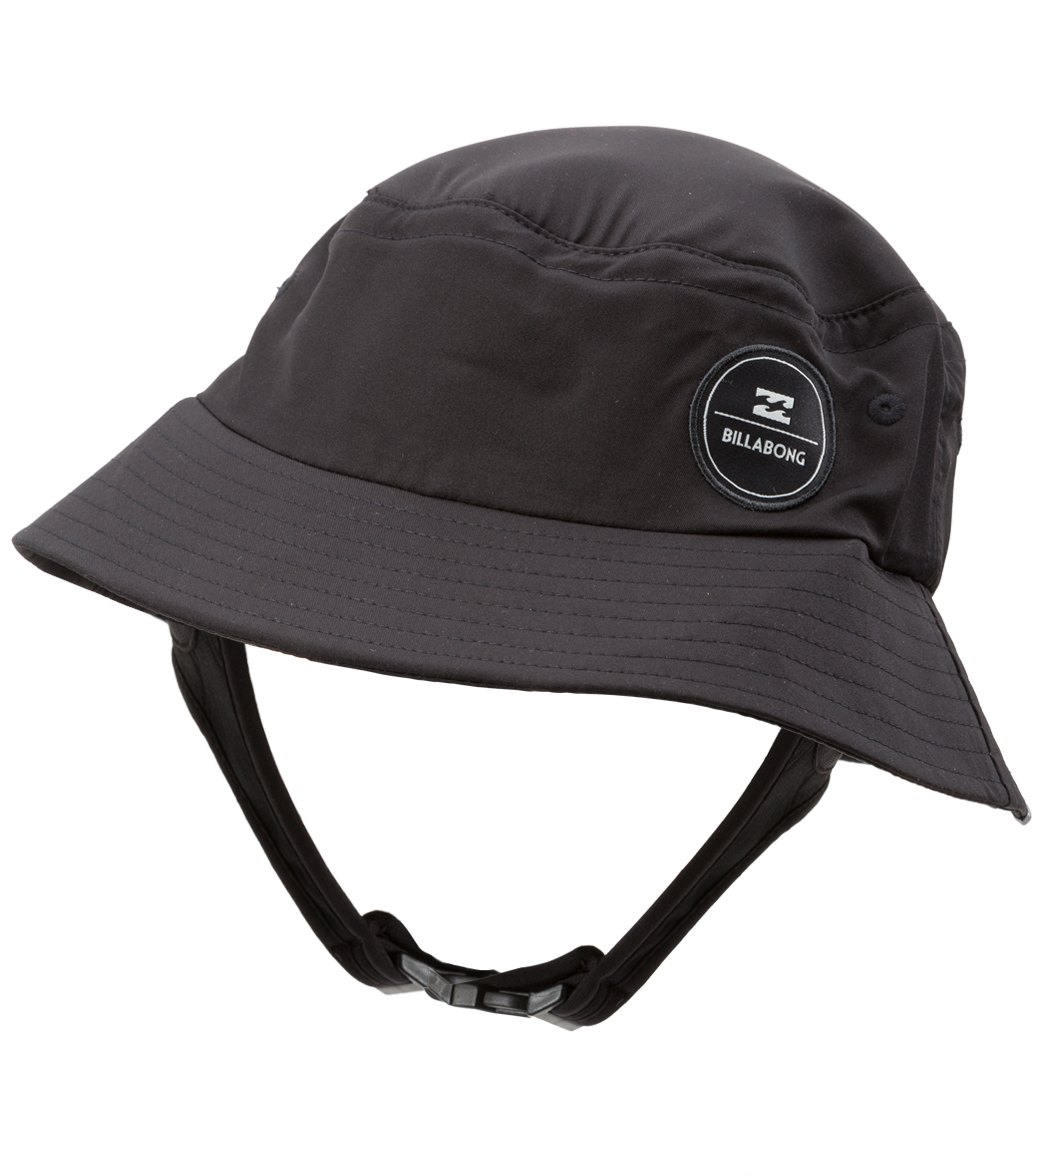 Billabong Men s Supreme Surf Bucket Hat at SwimOutlet.com 94eda5287db